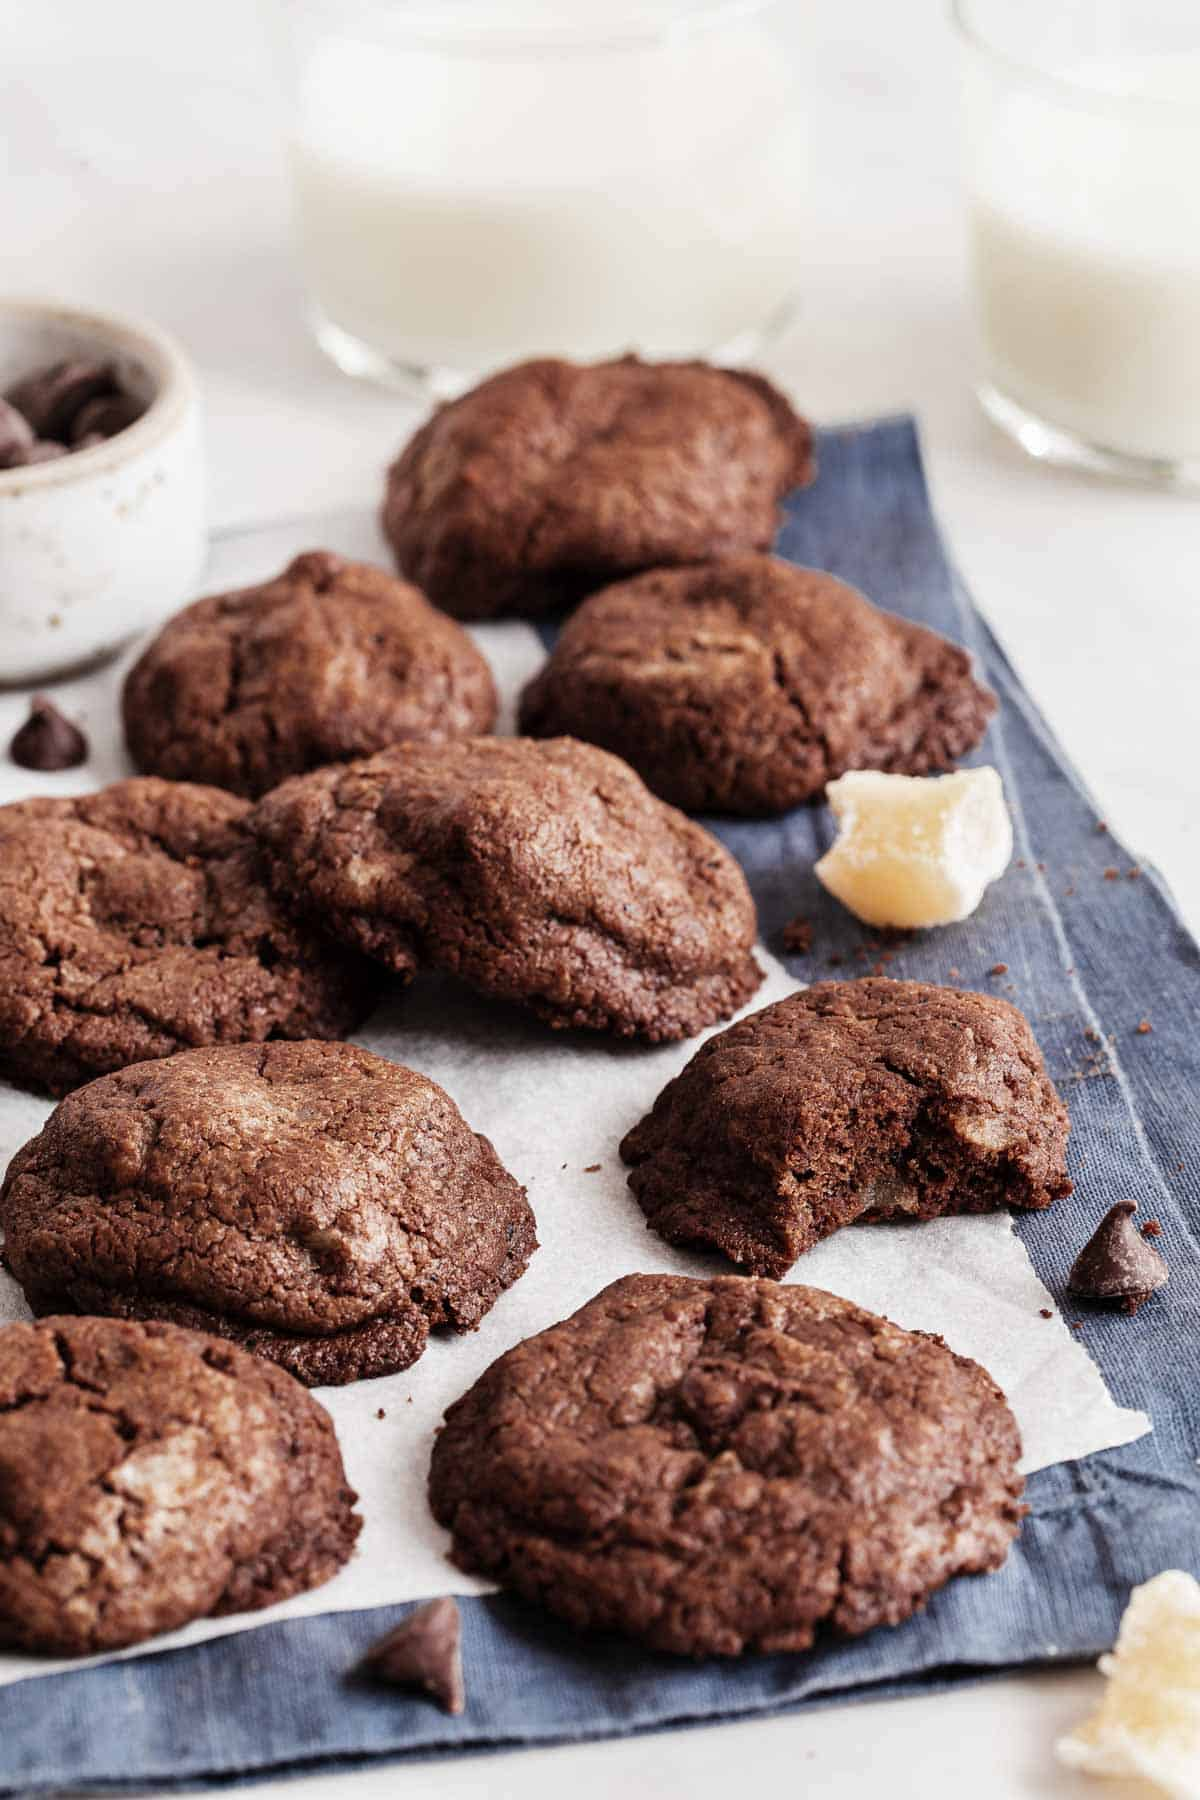 Stack of chewy chocolate cookies with ginger cubes.